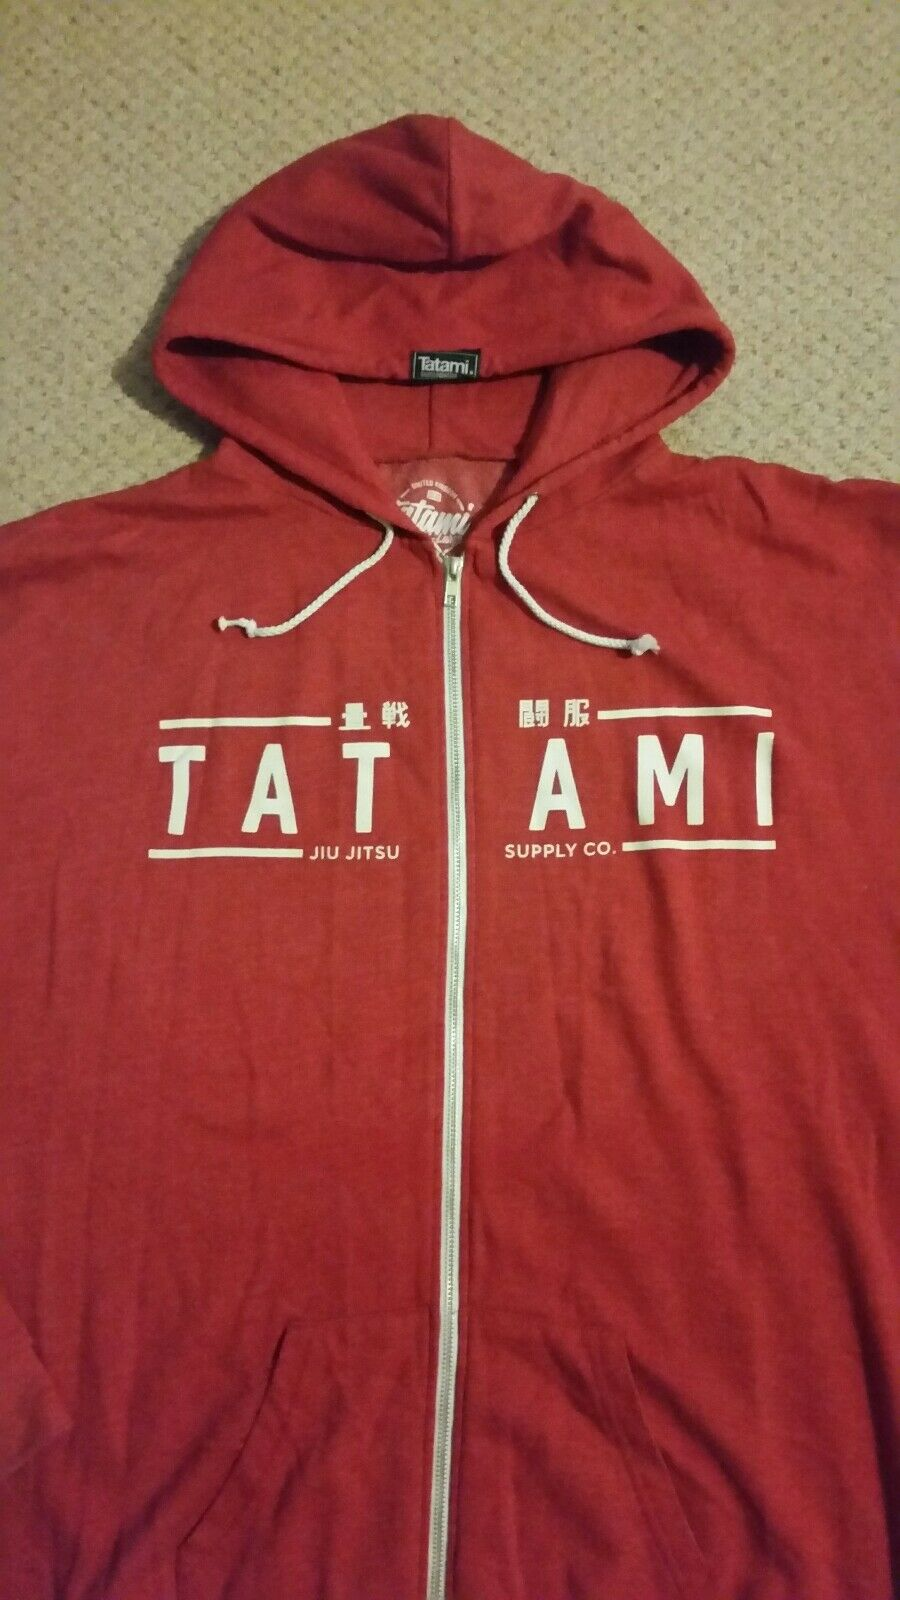 TATAMI ZIP UP HOODED SWEATSHIRT XXL ,,,  MMA UFC BJJ JIU JITSU GRAPPLING KSW GYM